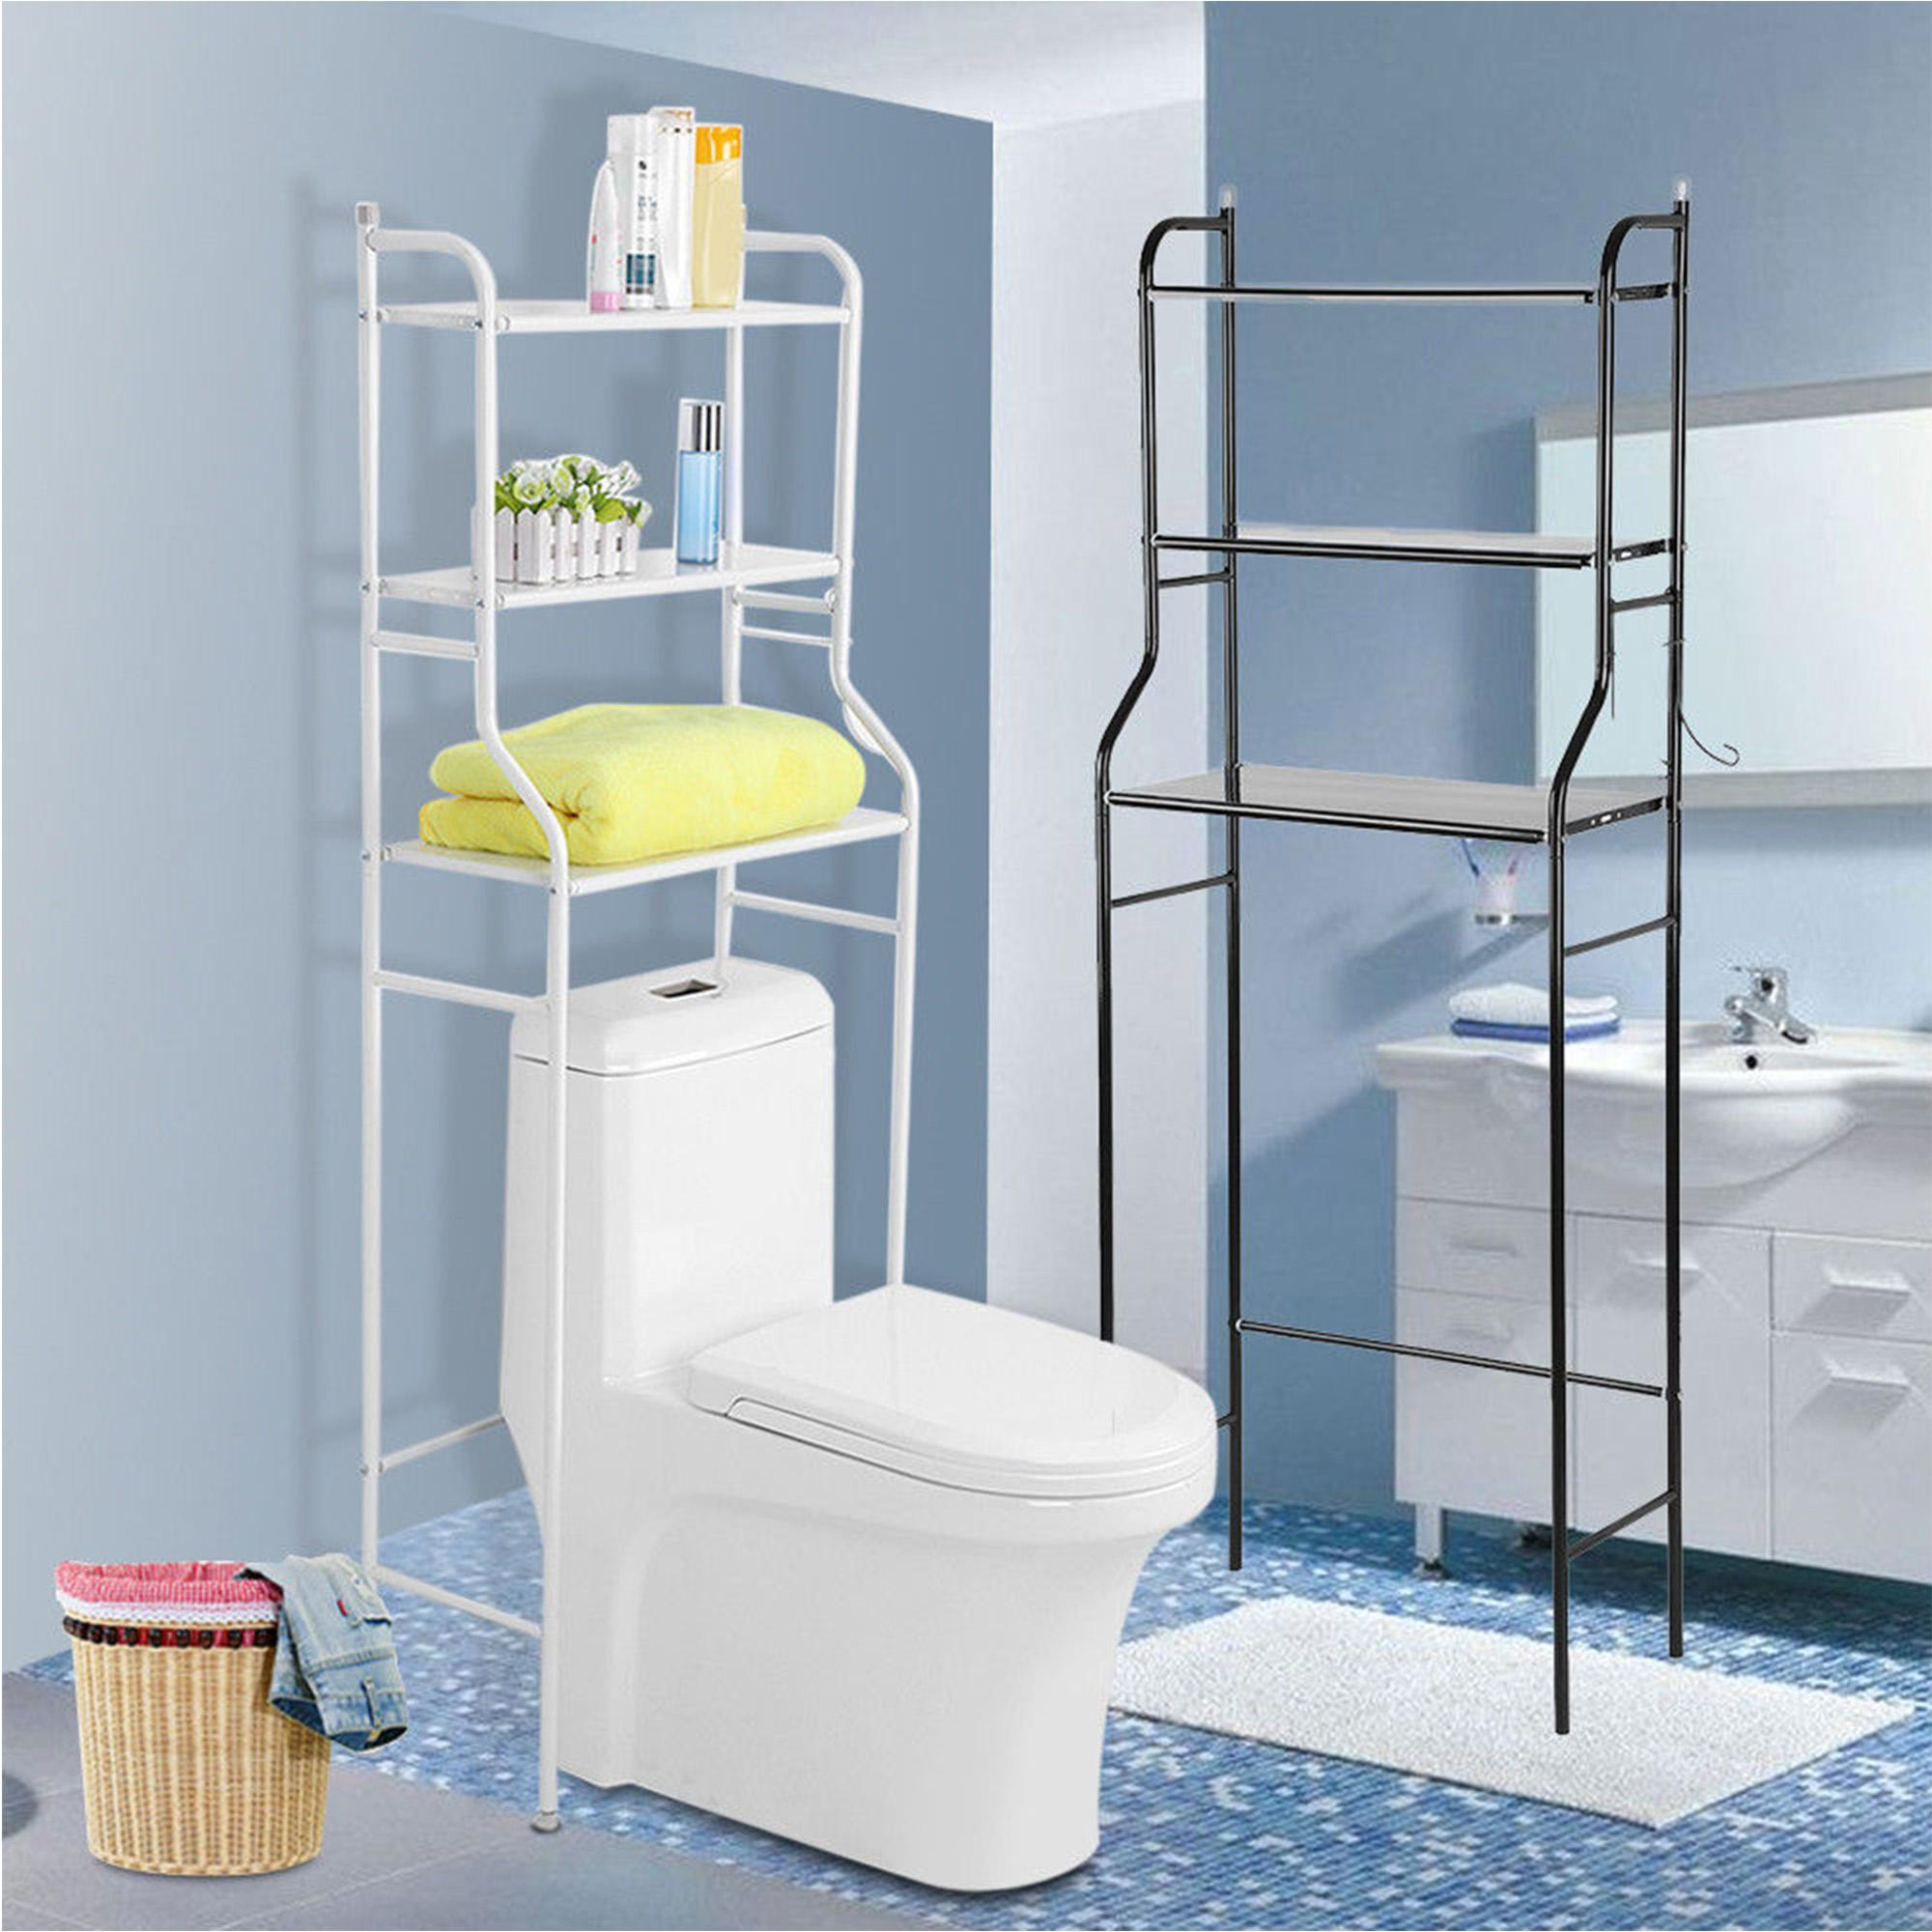 Bathroom Shelves for sale - Bathroom Shelving prices, brands ...